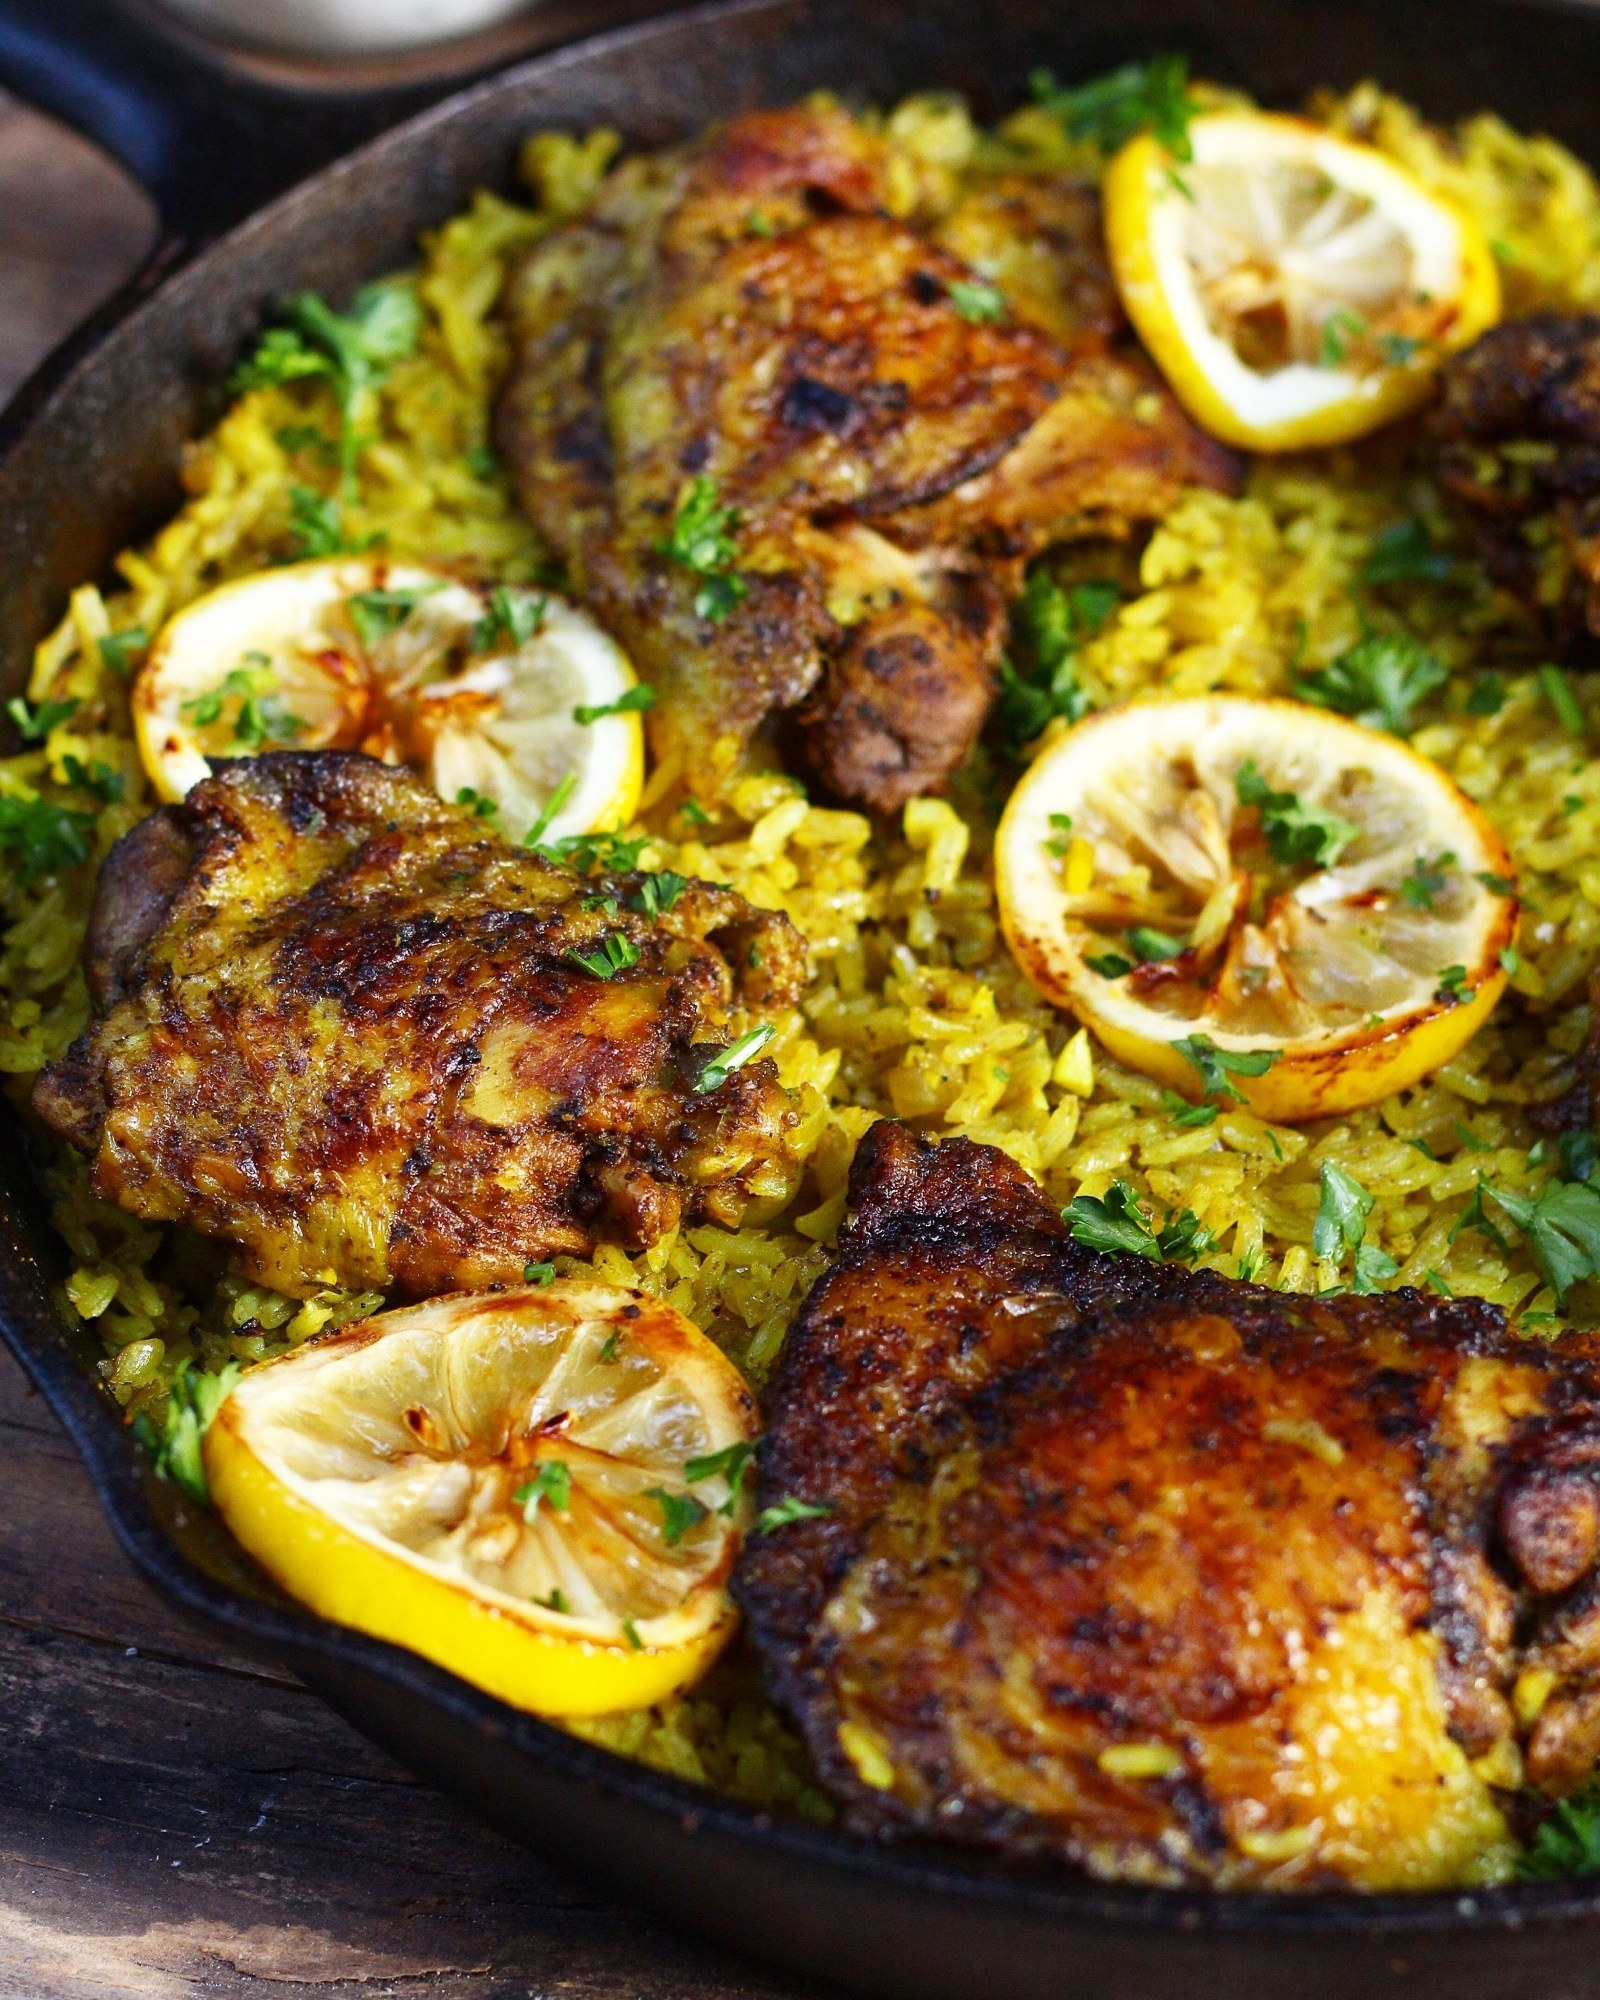 A cast iron skillet filled with chicken thighs over yellow rice with lemon wedges and herbs.